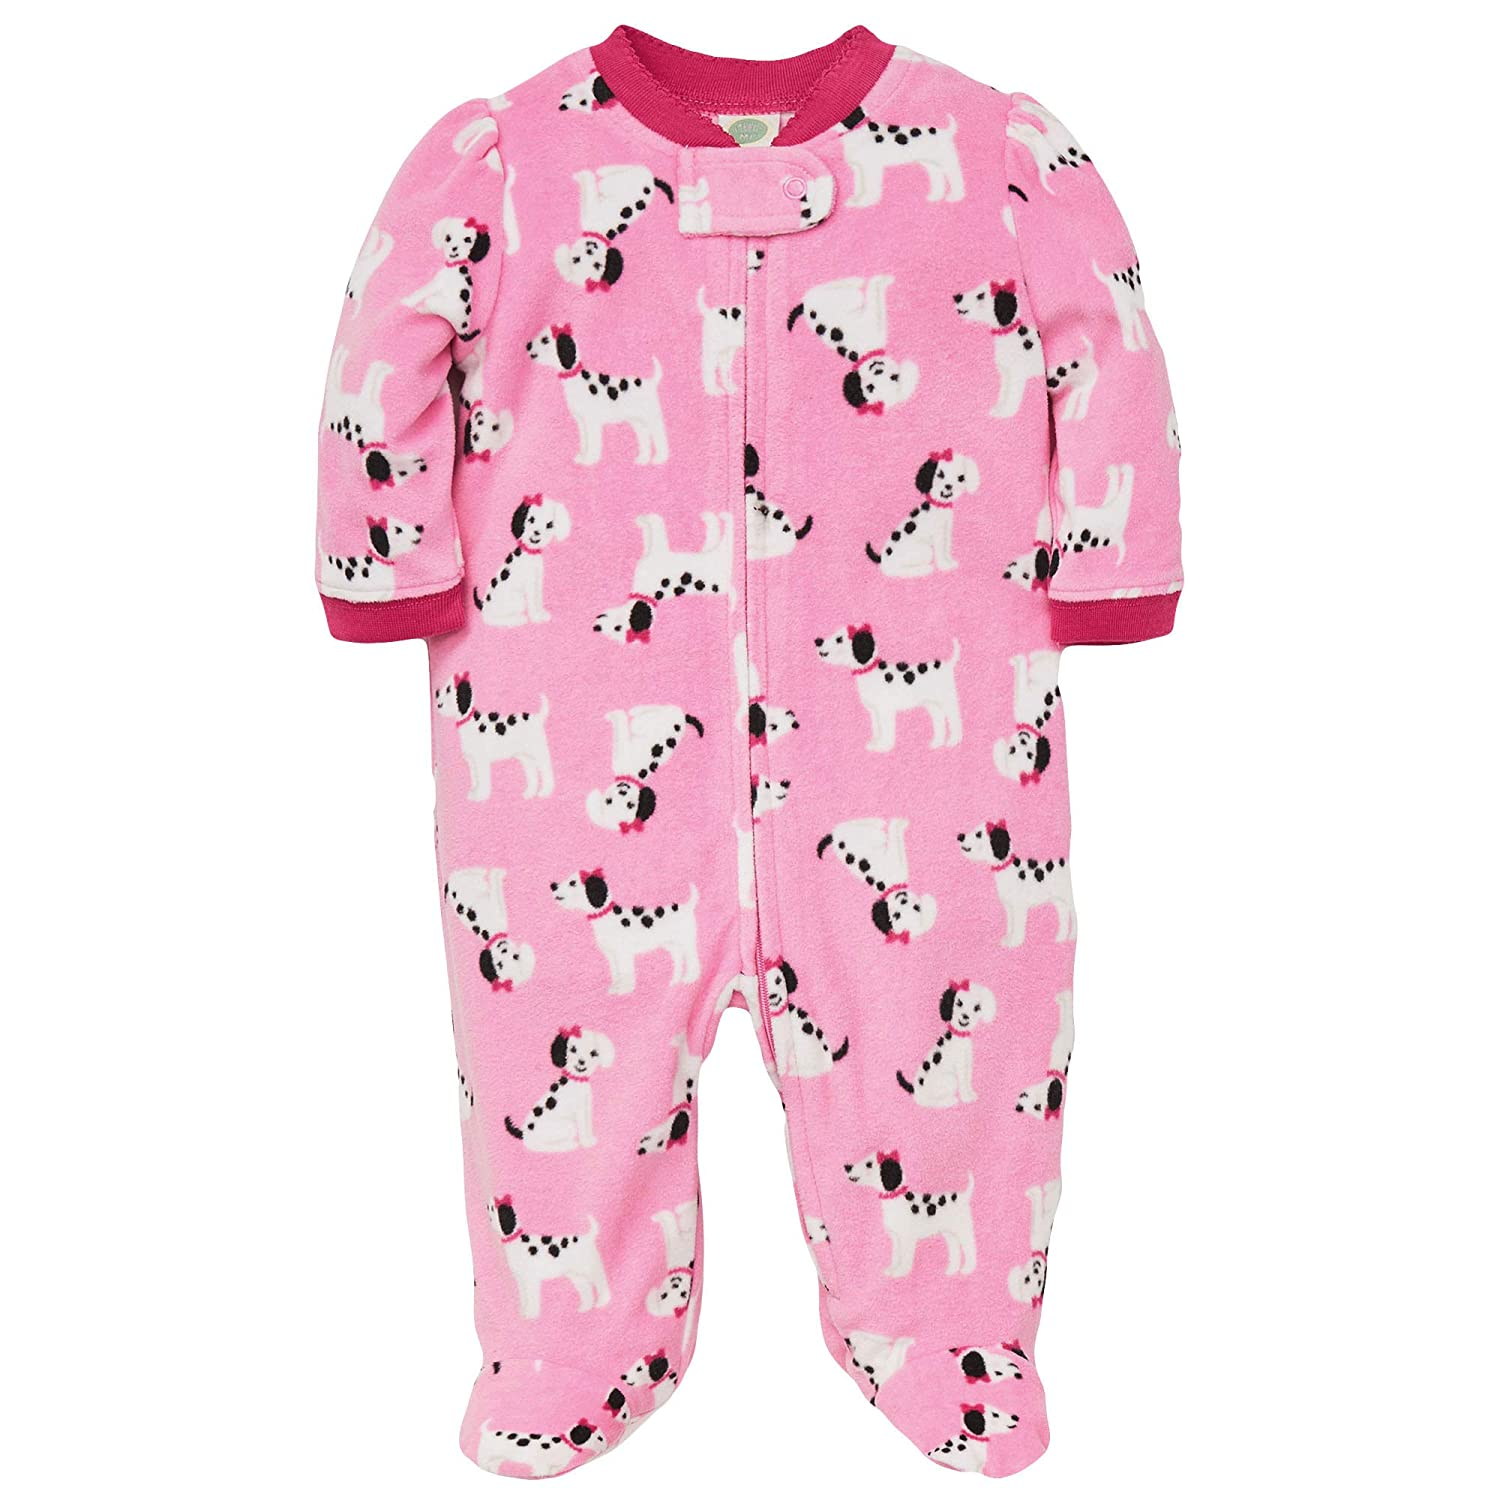 72021cd5bd74 Amazon.com  Little Me Warm Fleece Baby Pajamas Footed Blanket ...